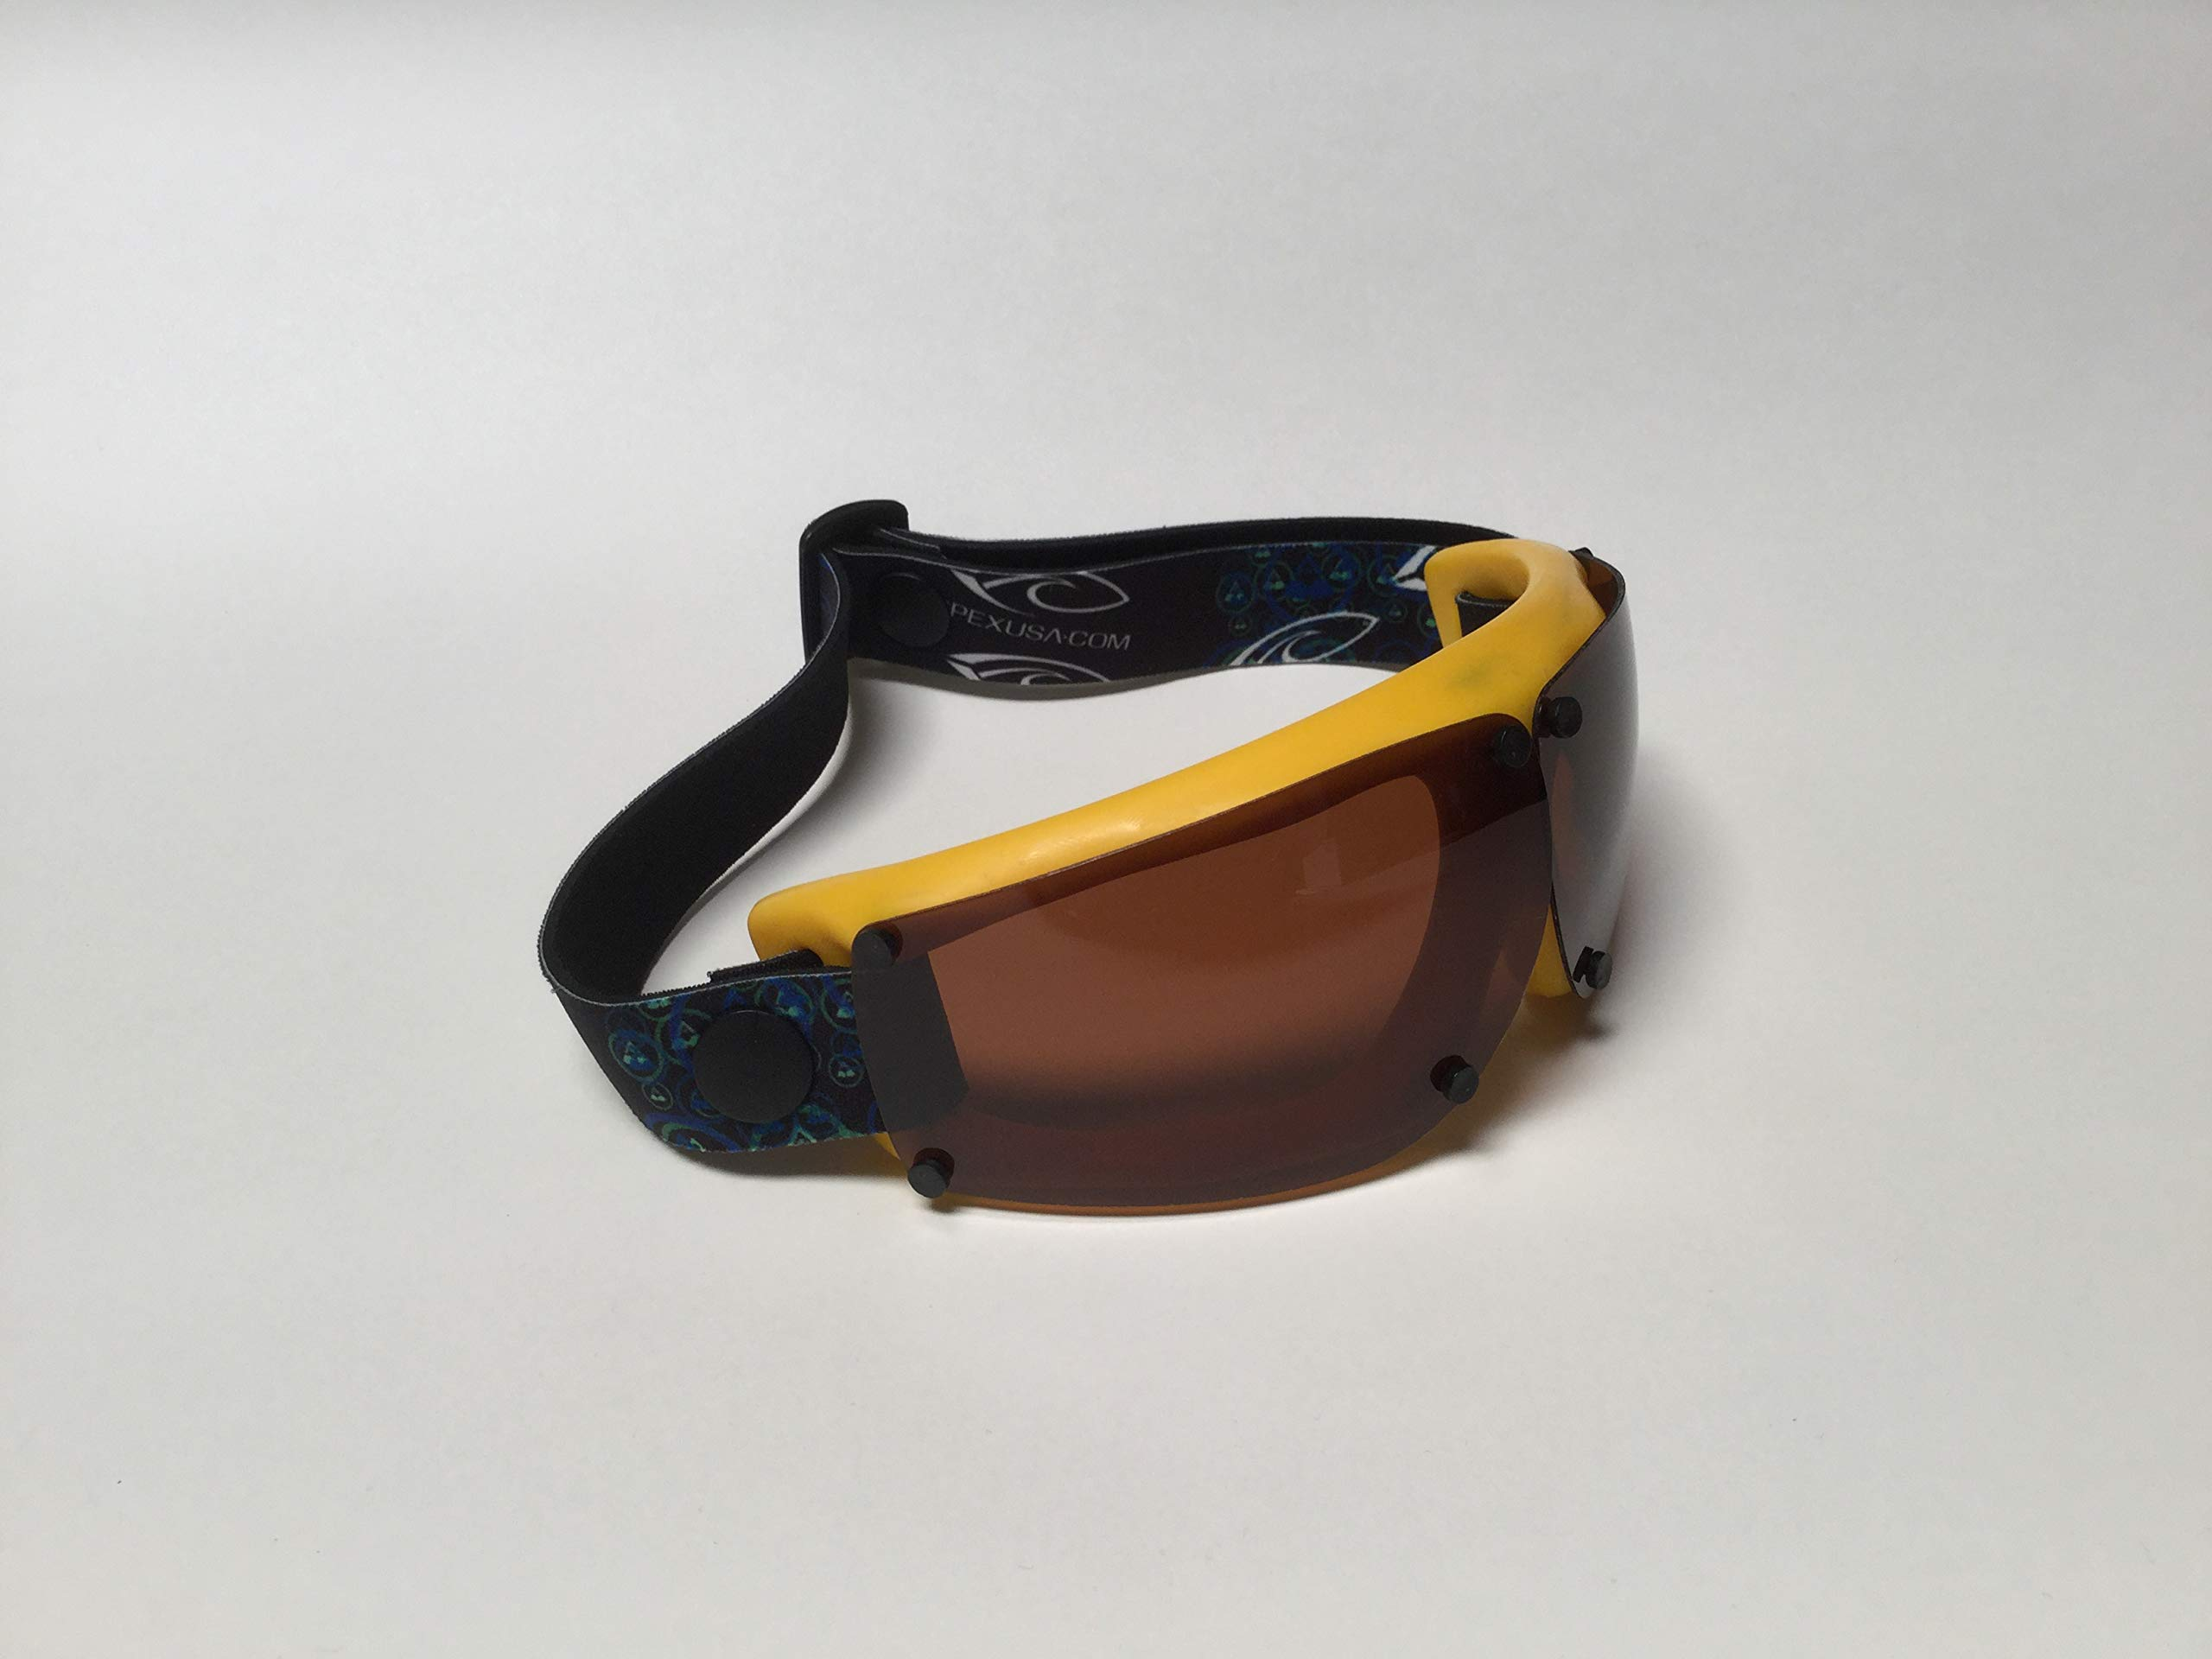 Spex Amphibian Eyewear - Limited Edition- Yellow Blend- with Polarized All Weather Lenses